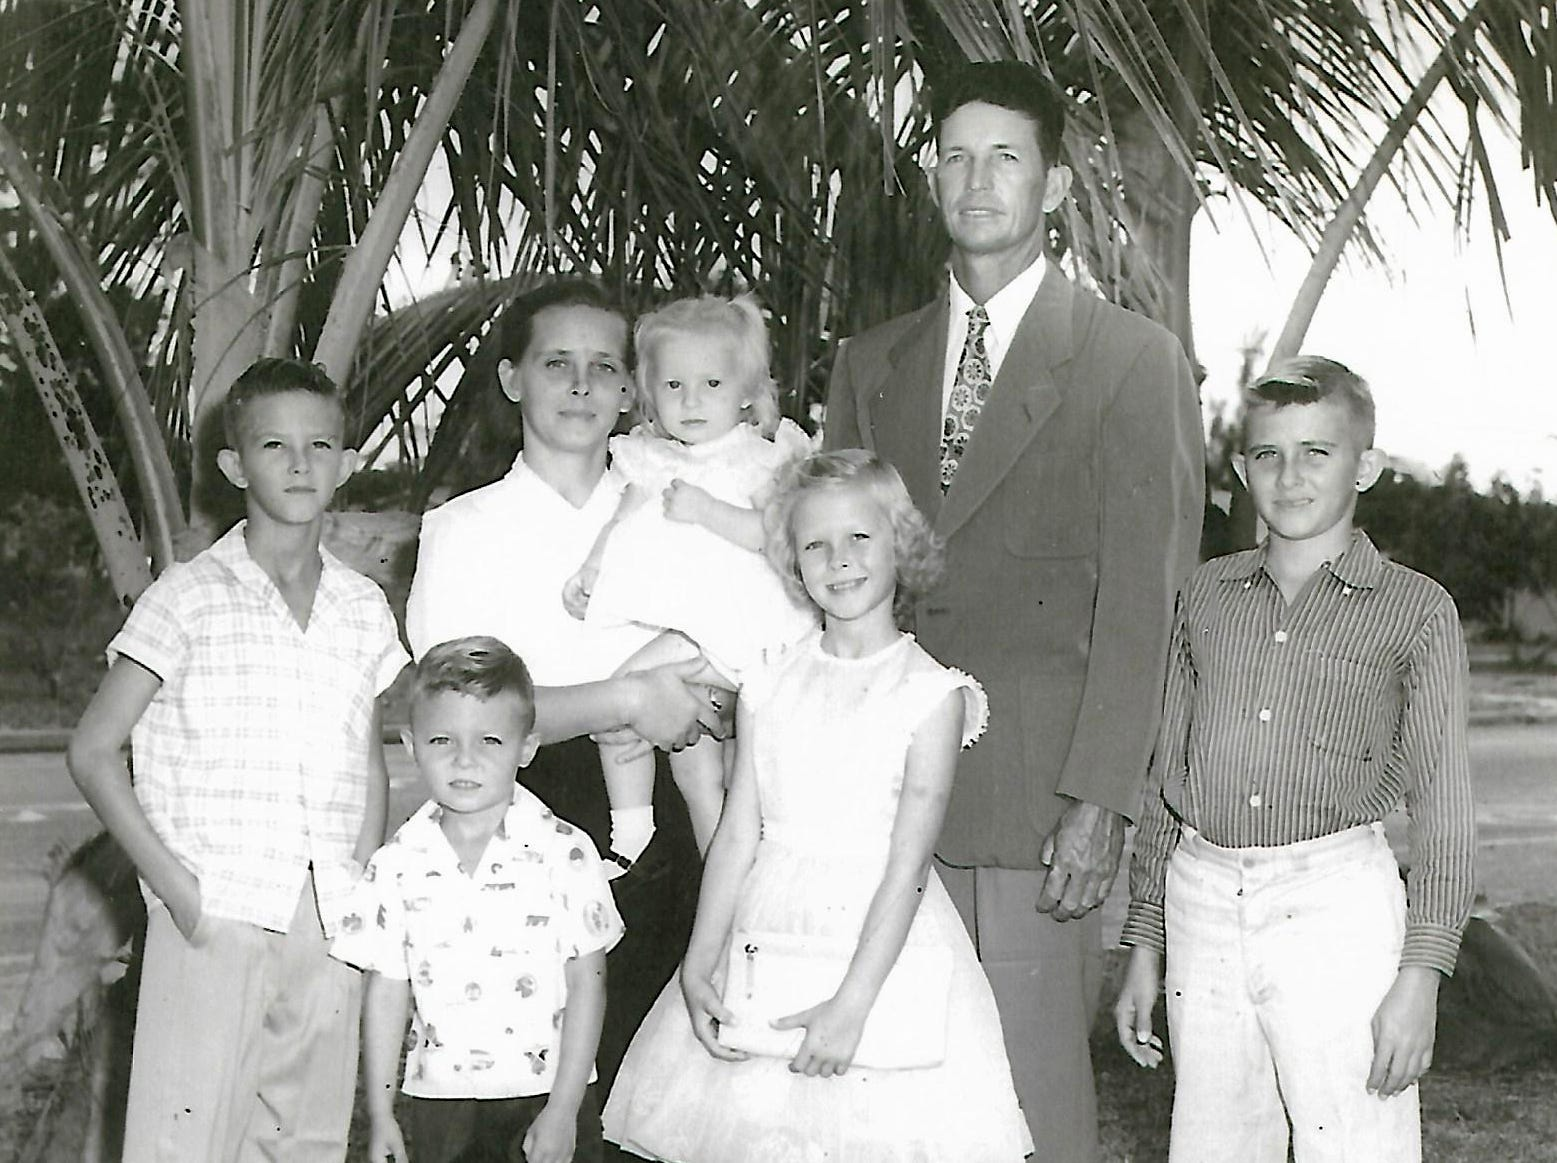 Robert Walker Sr., born on Marco Island in 1921, with his family in this undated photo. He celebrated his 98th birthday on Sunday, Jan. 6 at his home in Cross City, Florida.